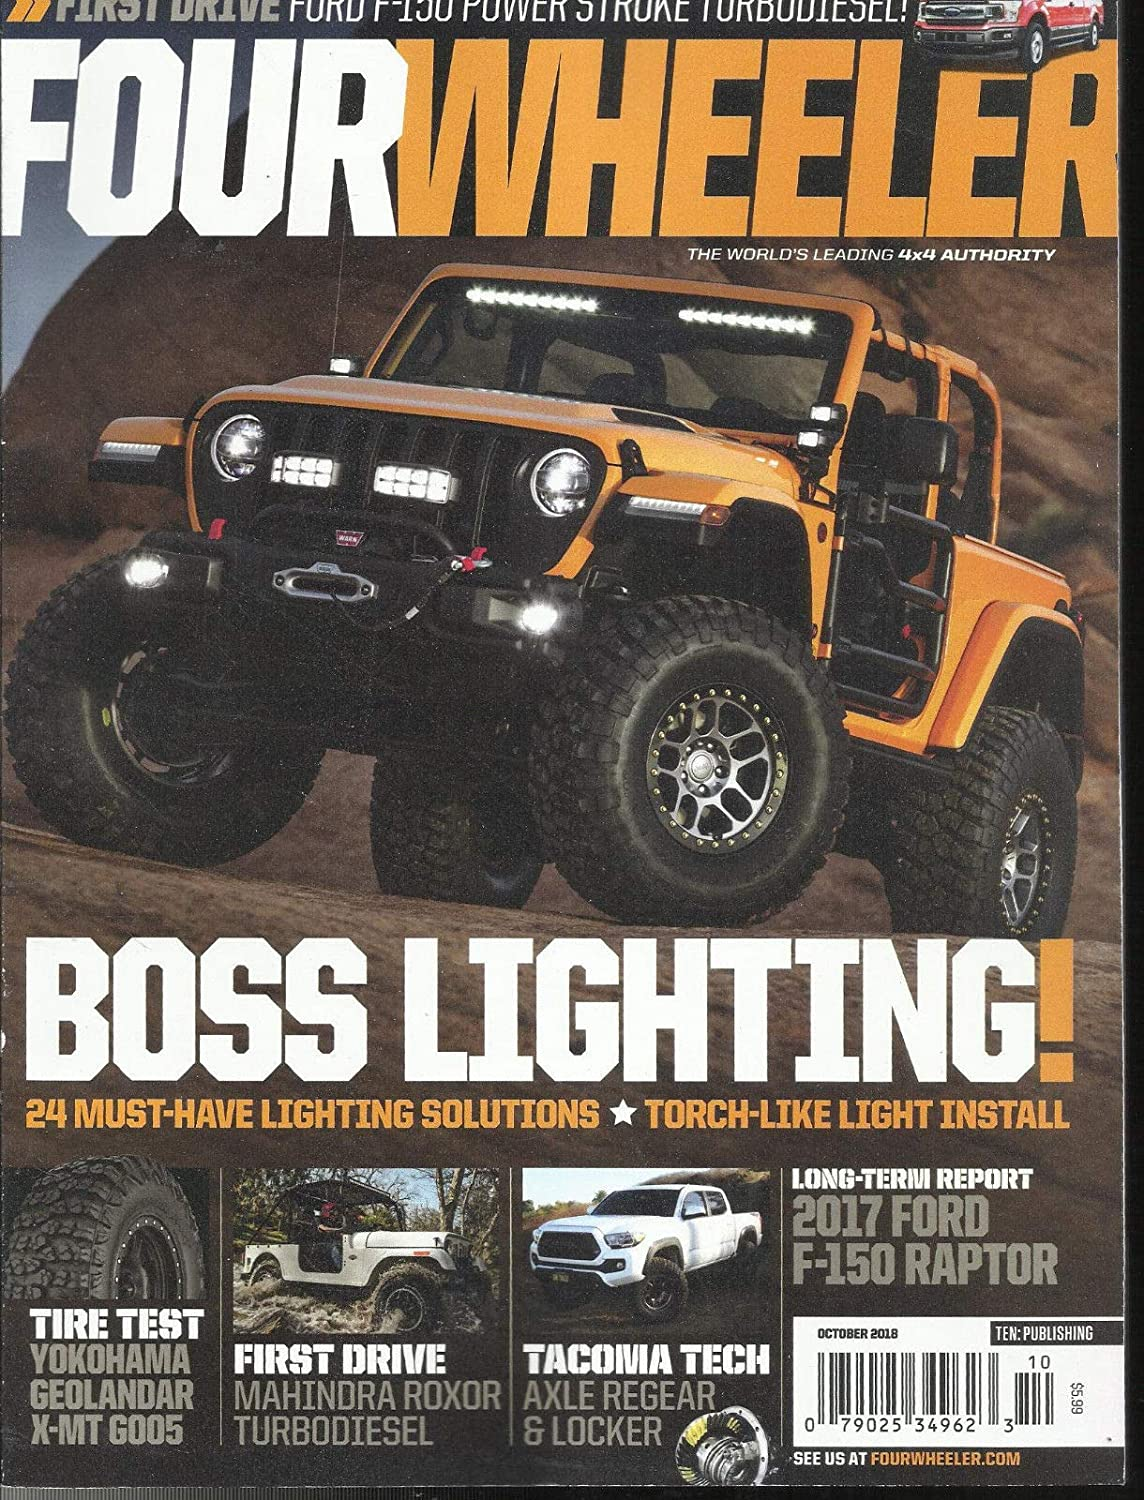 FOUR WHEELER MAGAZINE WORLD'S LEADING 4X4 AUTHORITY OCTOBER, 2018 s3457